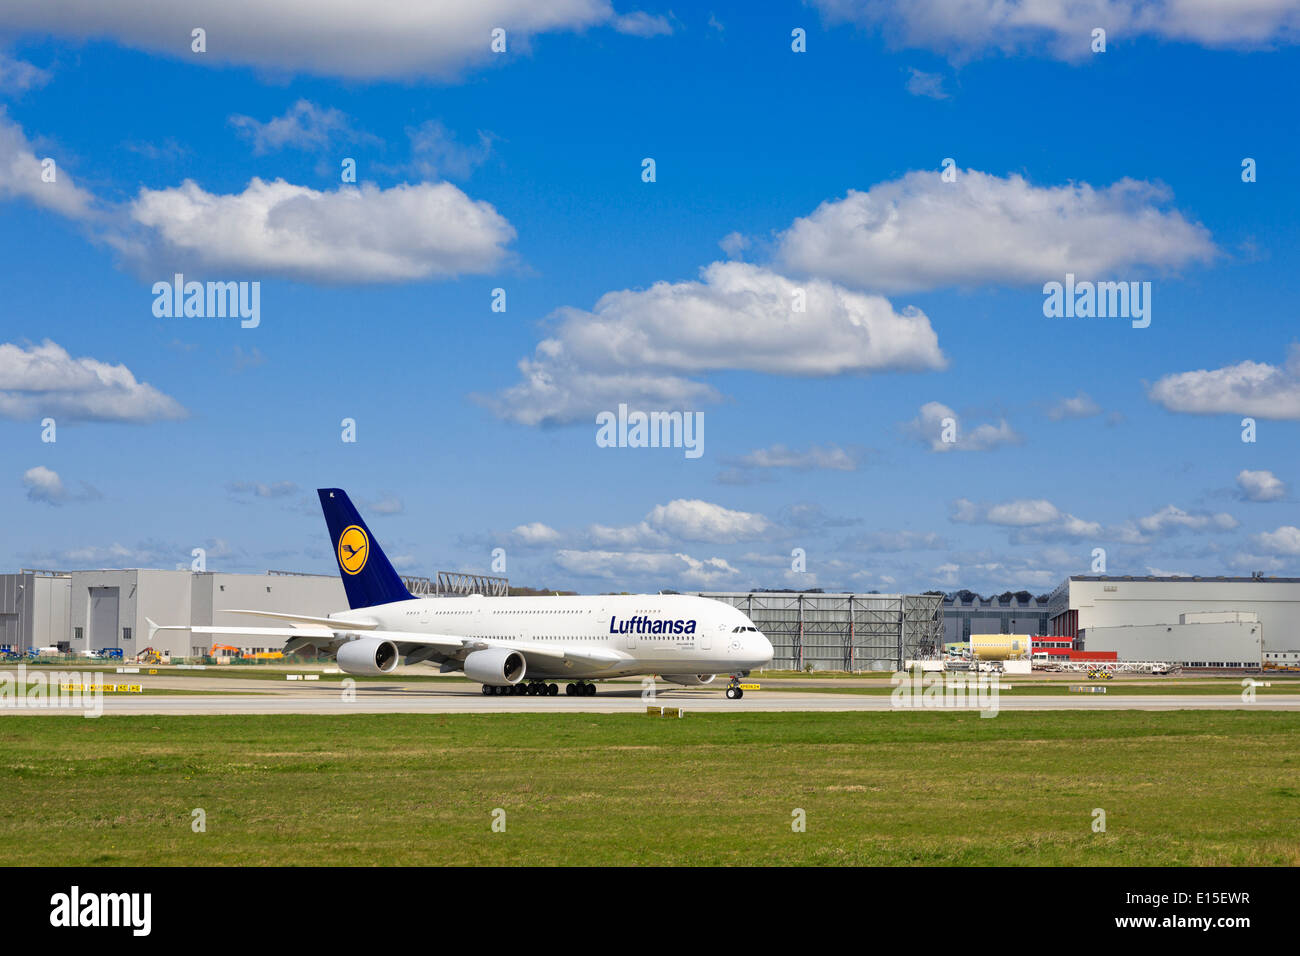 airbus a380 hamburg finkenwerder stockfotos airbus a380 hamburg finkenwerder bilder alamy. Black Bedroom Furniture Sets. Home Design Ideas